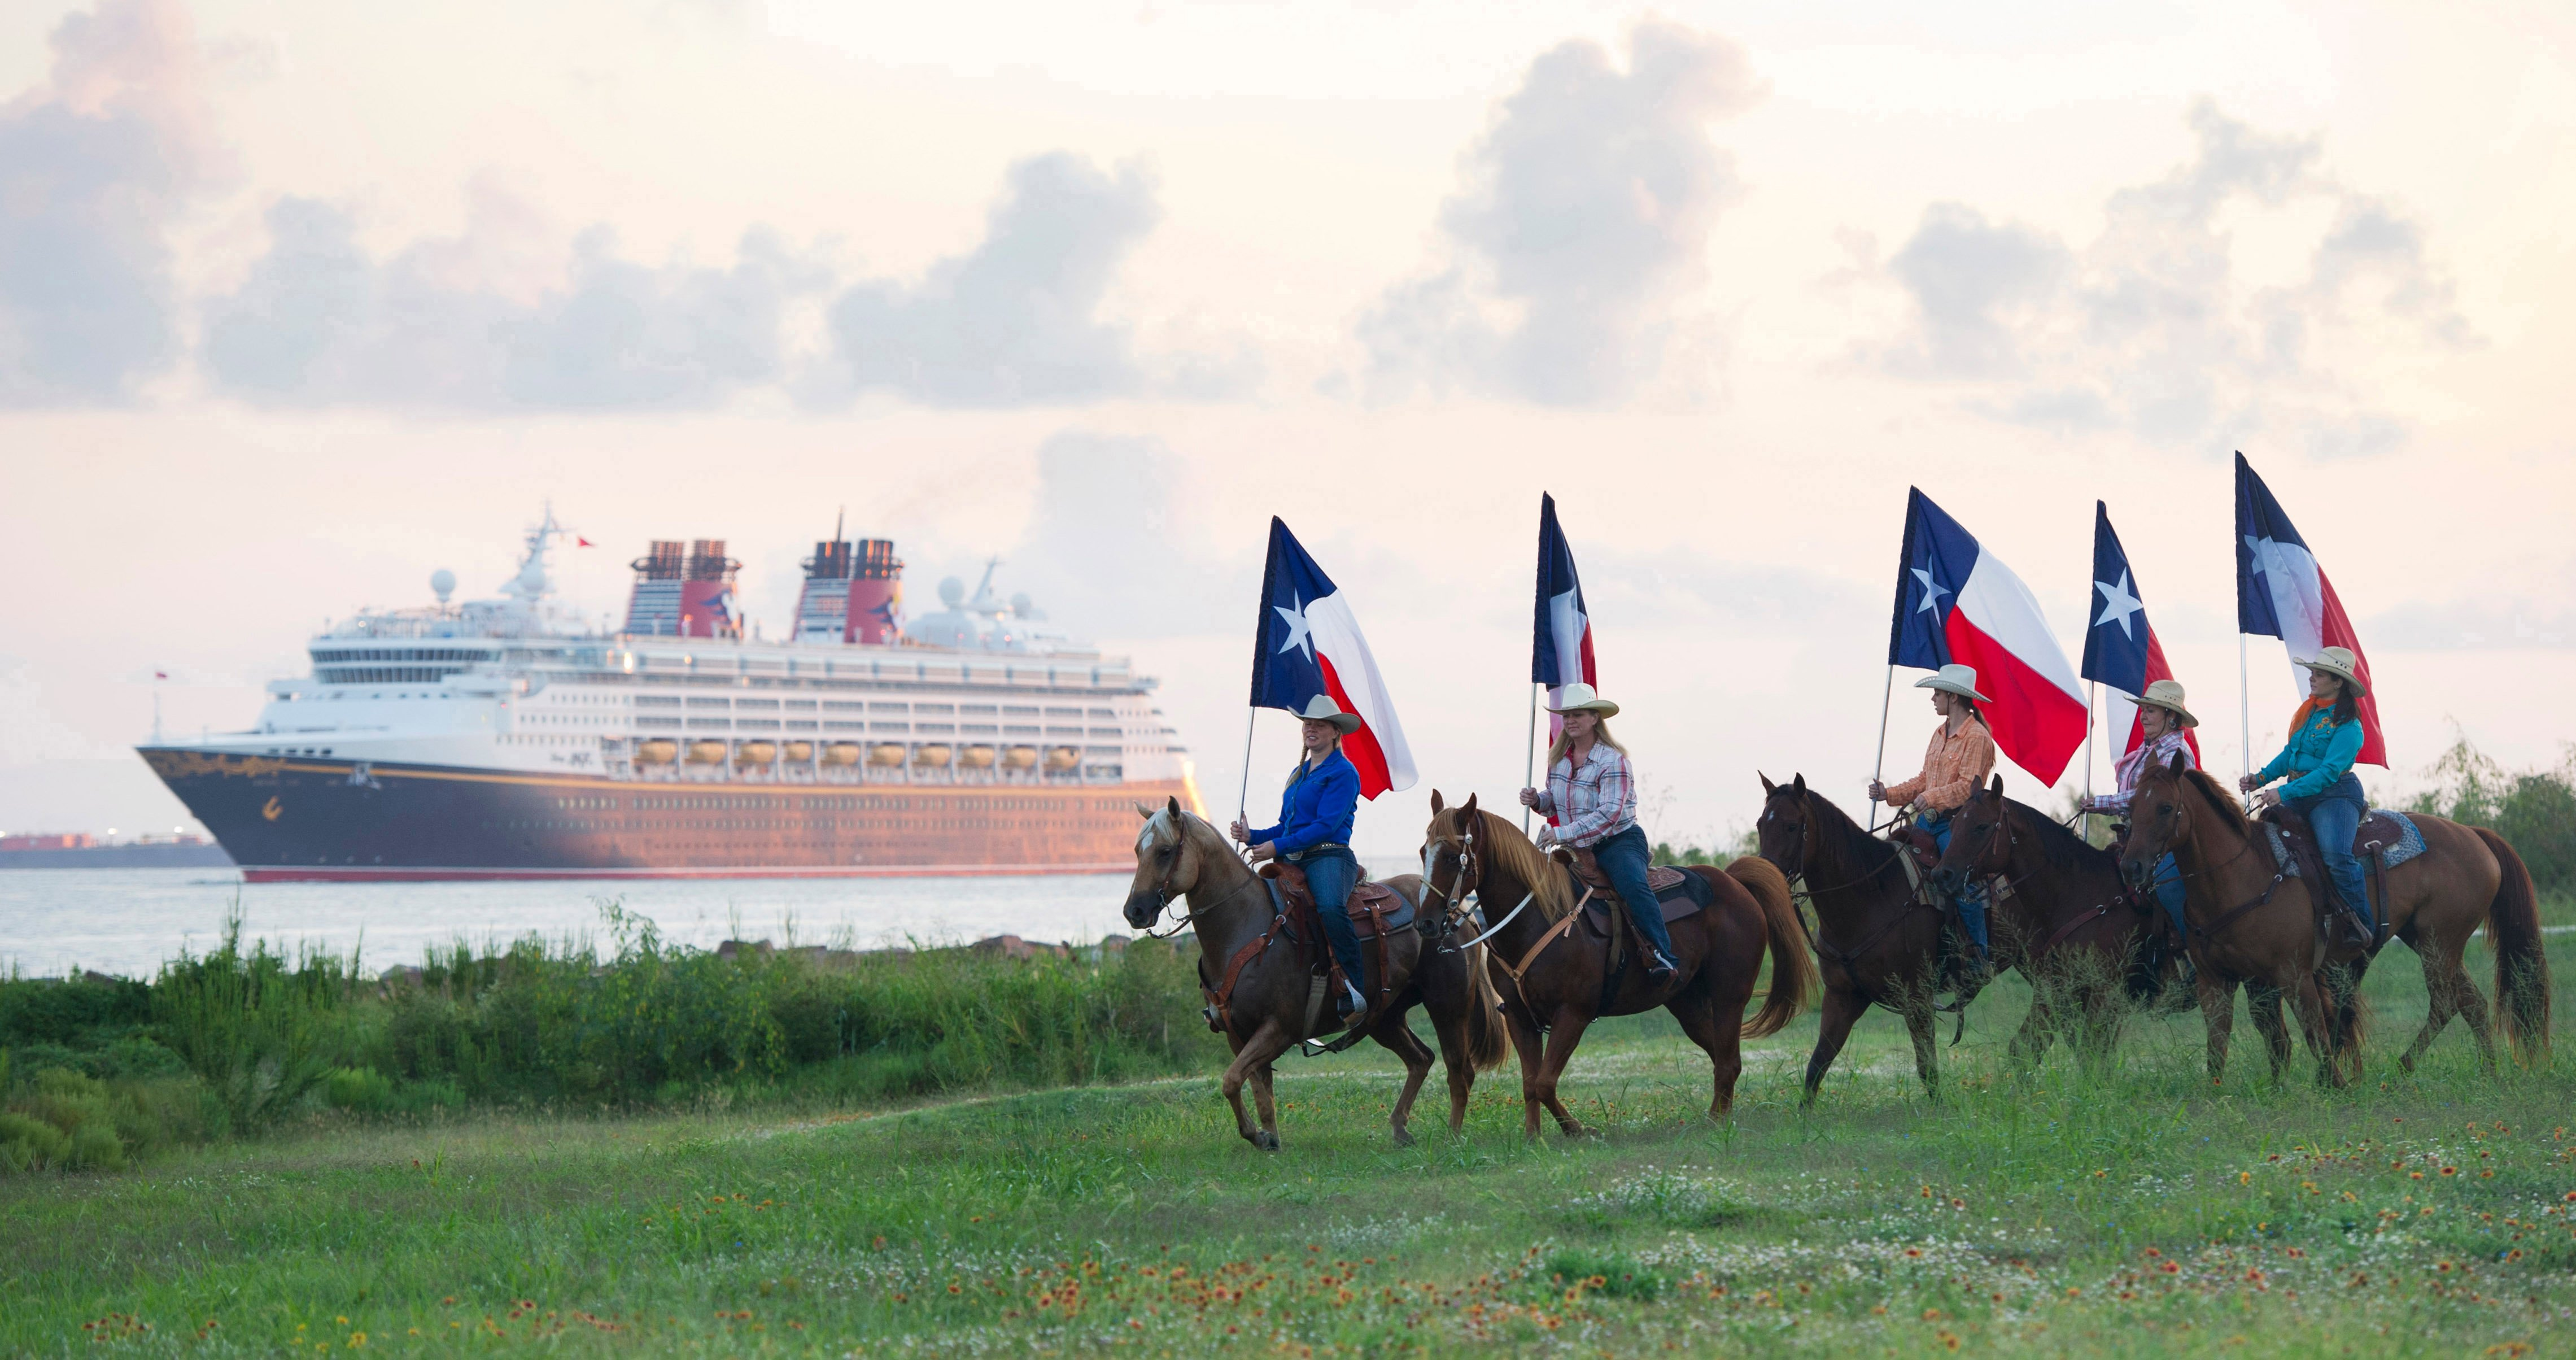 Disney Cruise Line Announces Sailing Out Of Nyc Galveston And San Diego In 2017